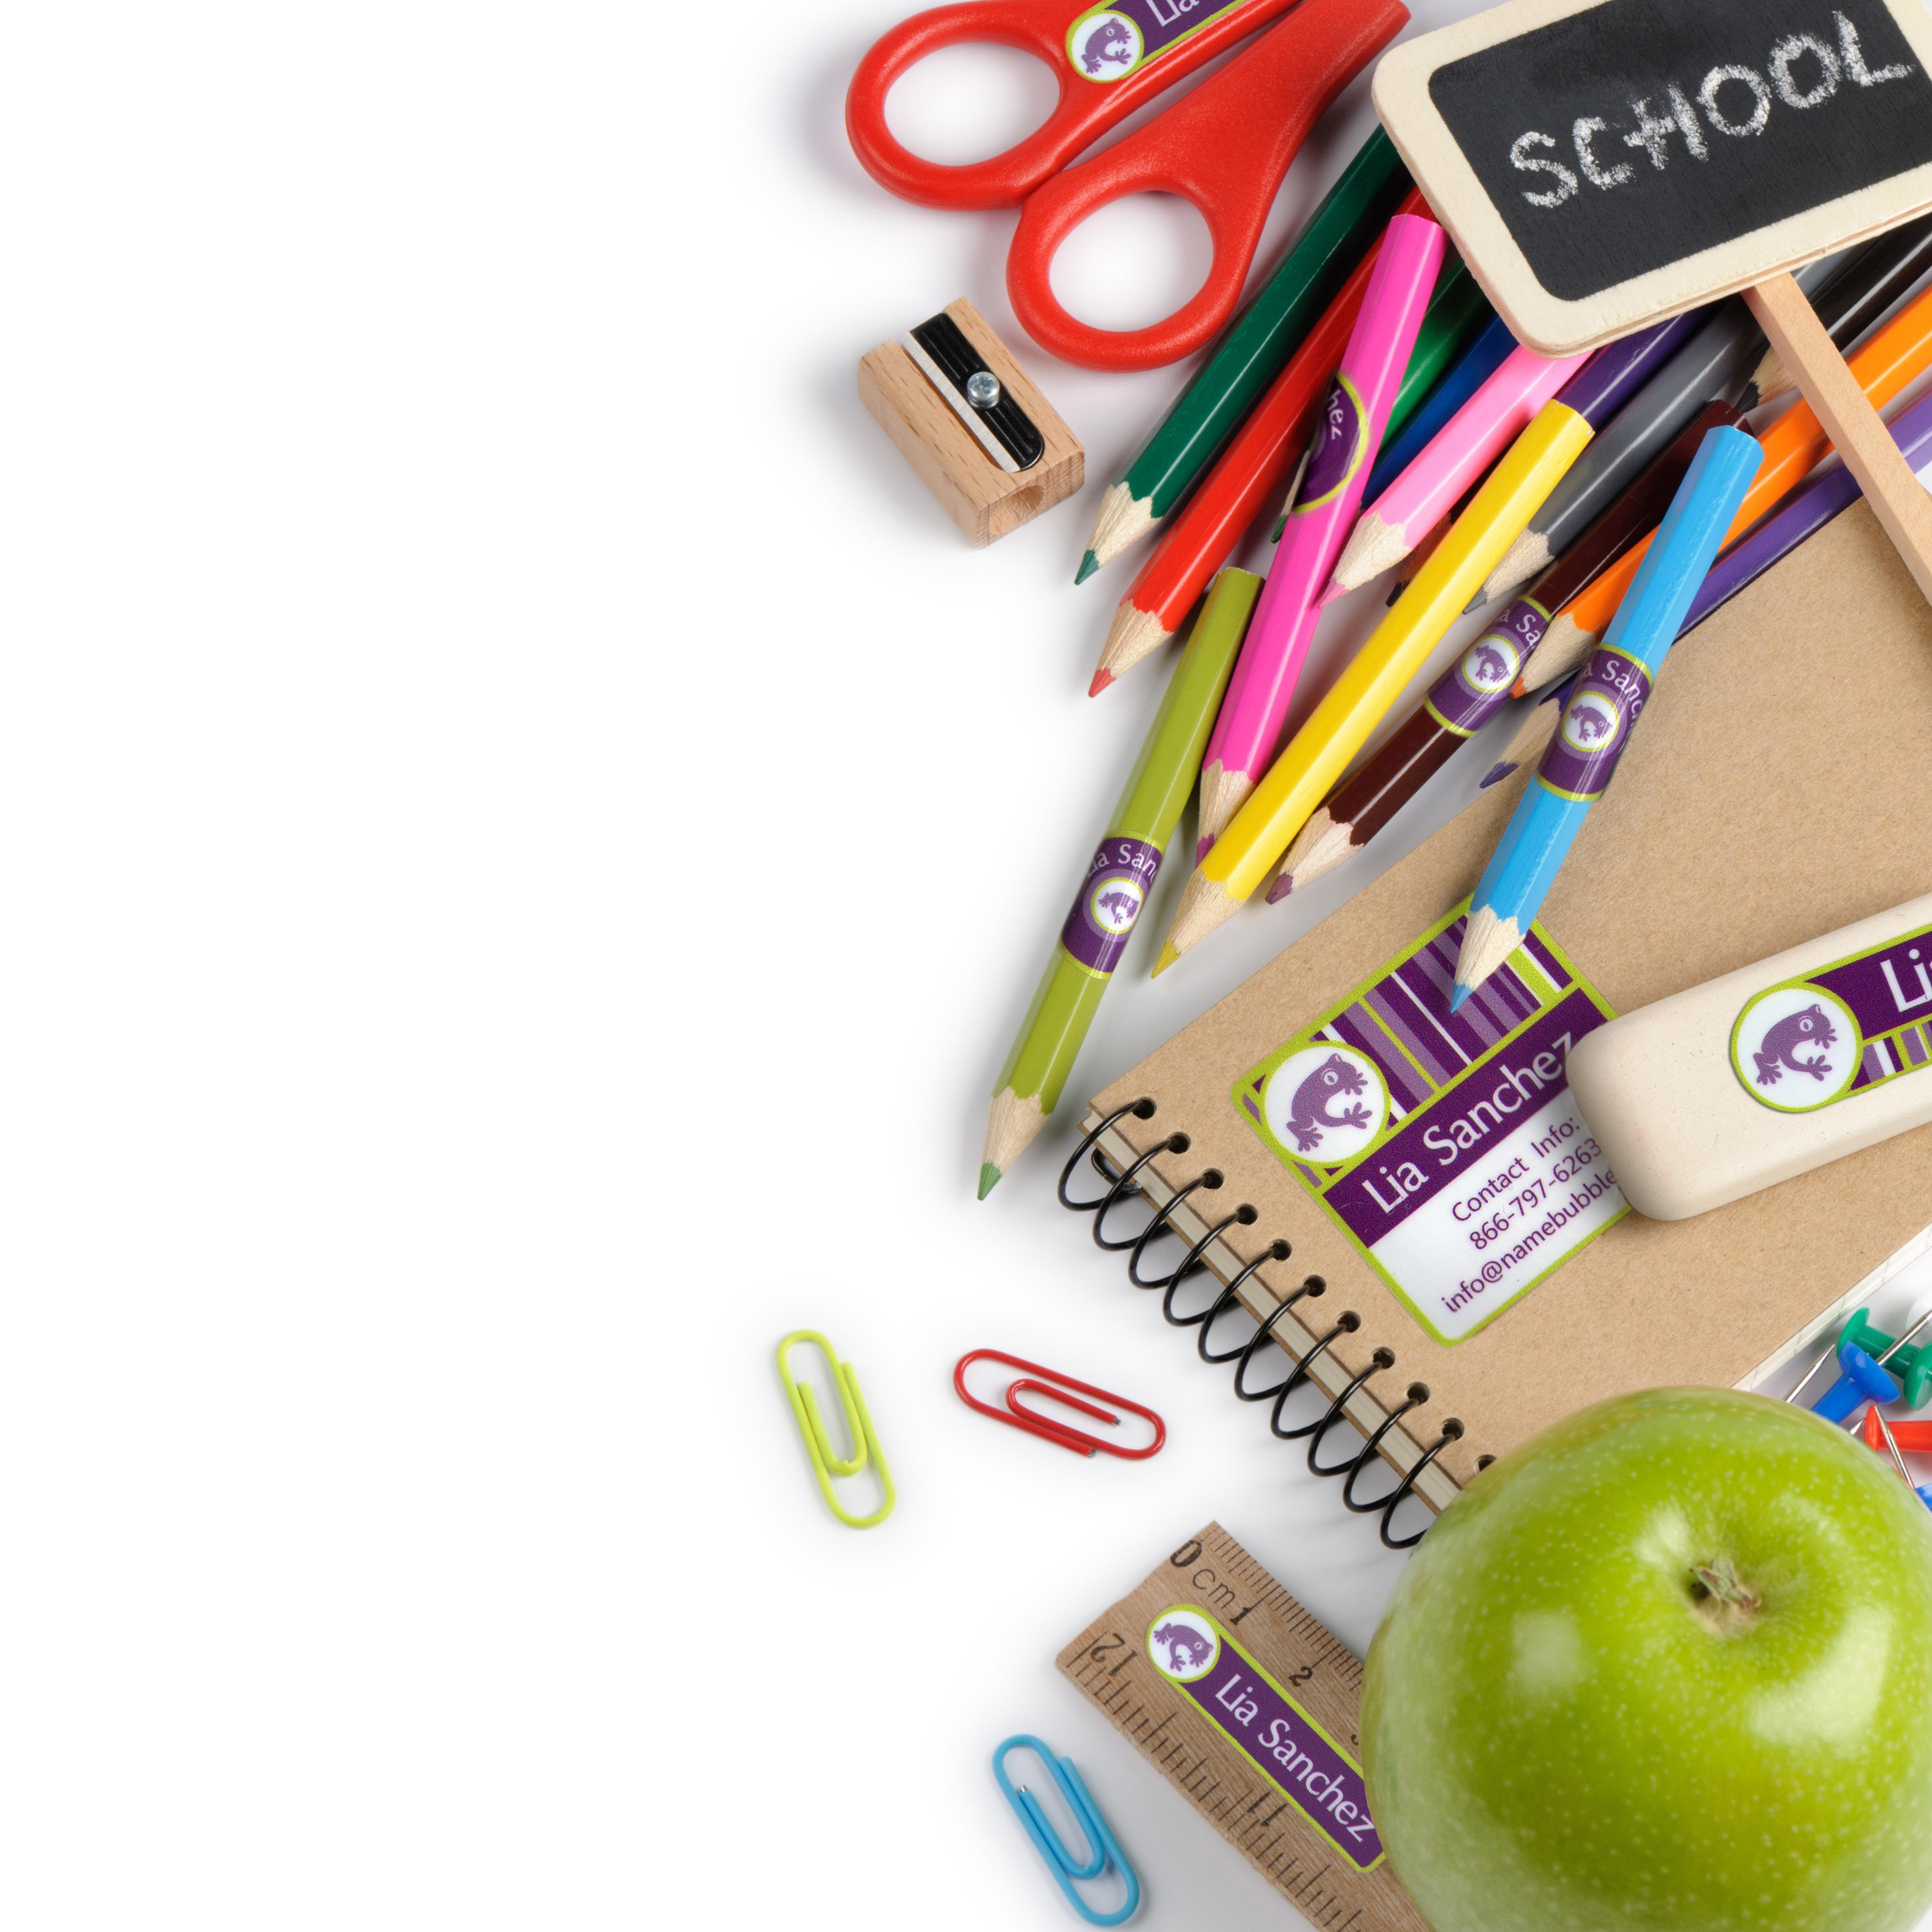 New For Back-to-School: Name Bubbles Launches Lunchbox Labels